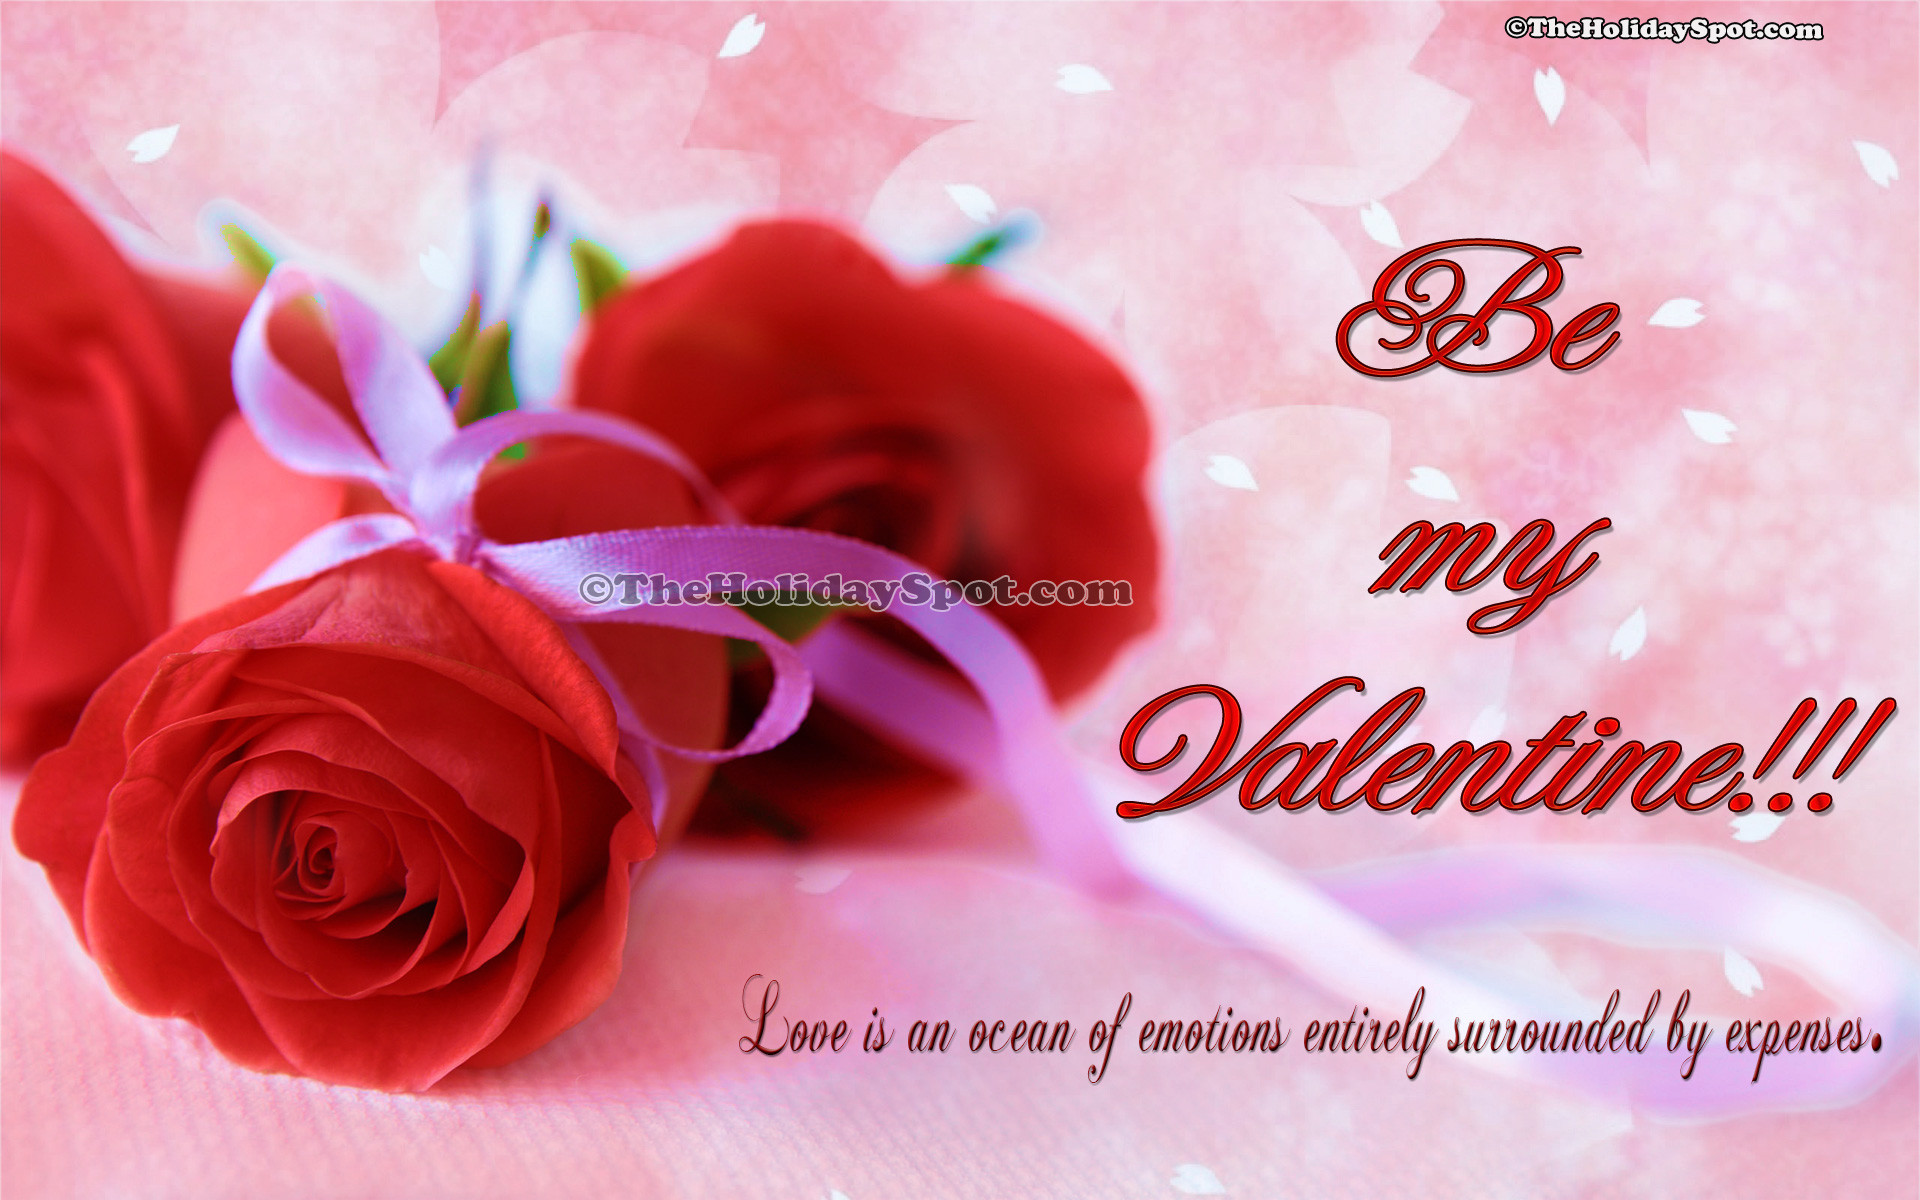 1920x1200 HD valentine's day wallpapers of two red roses